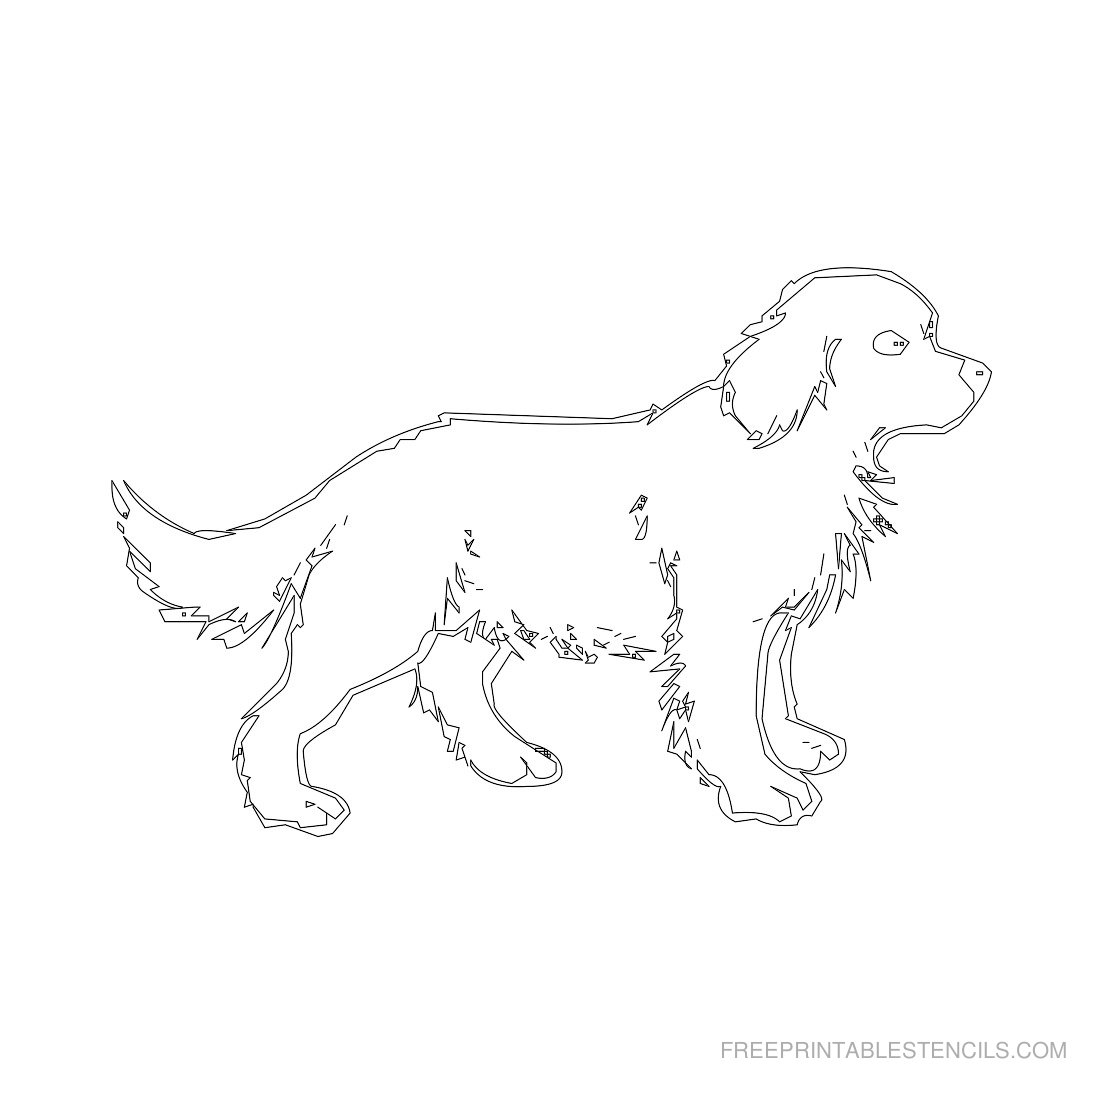 Free Printable Animal Stencil Dog